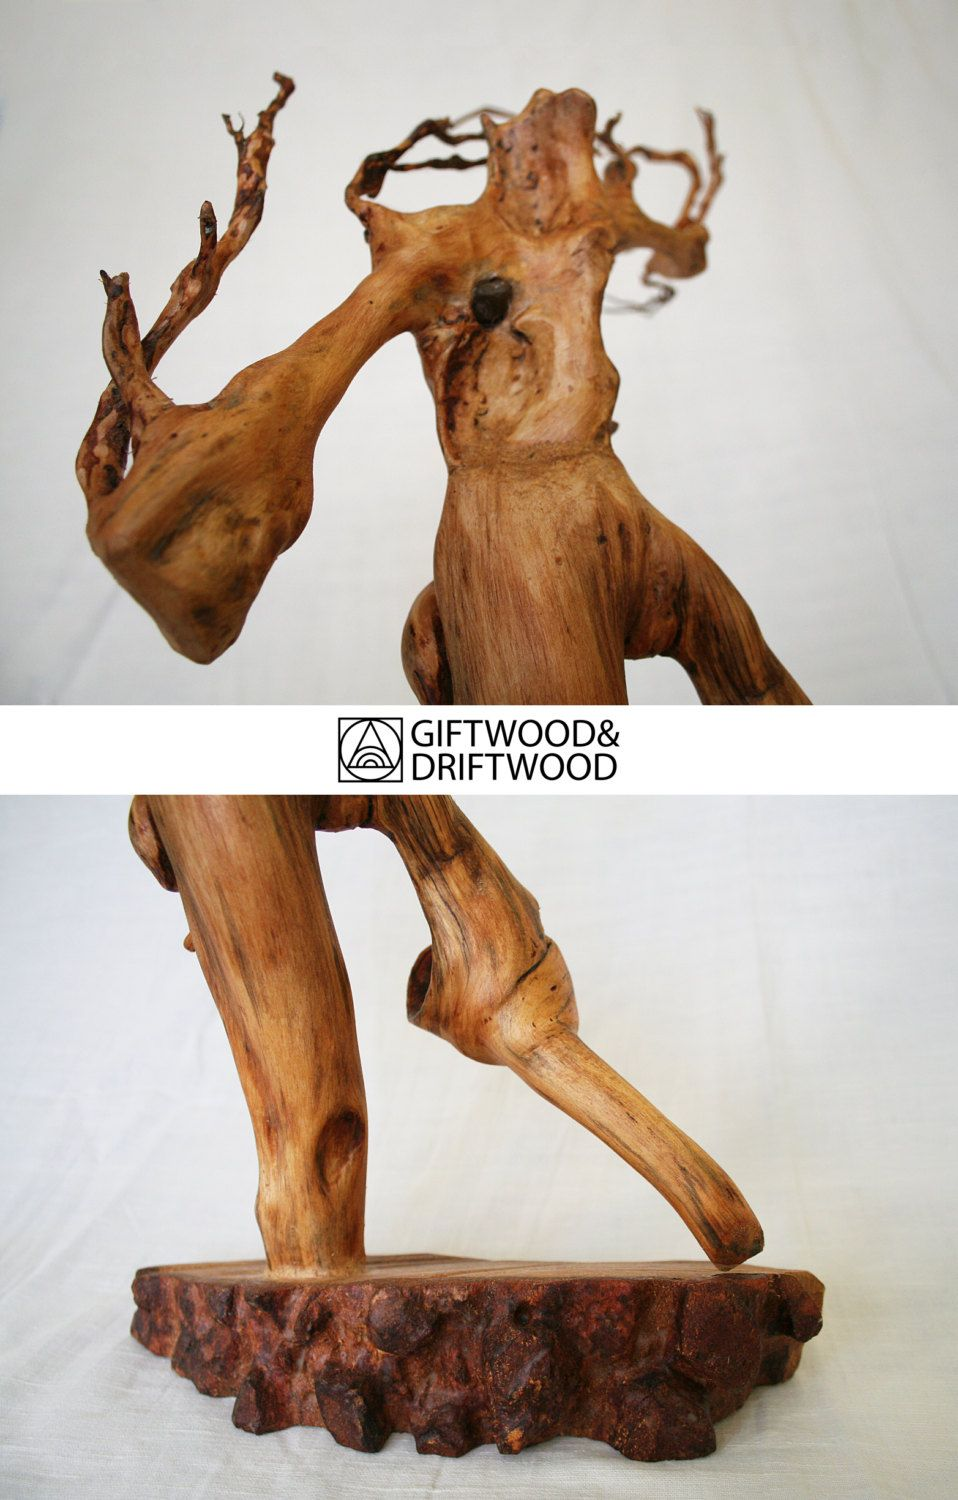 Pin by GiftWoodAndDriftwood on Sculptures Pinterest